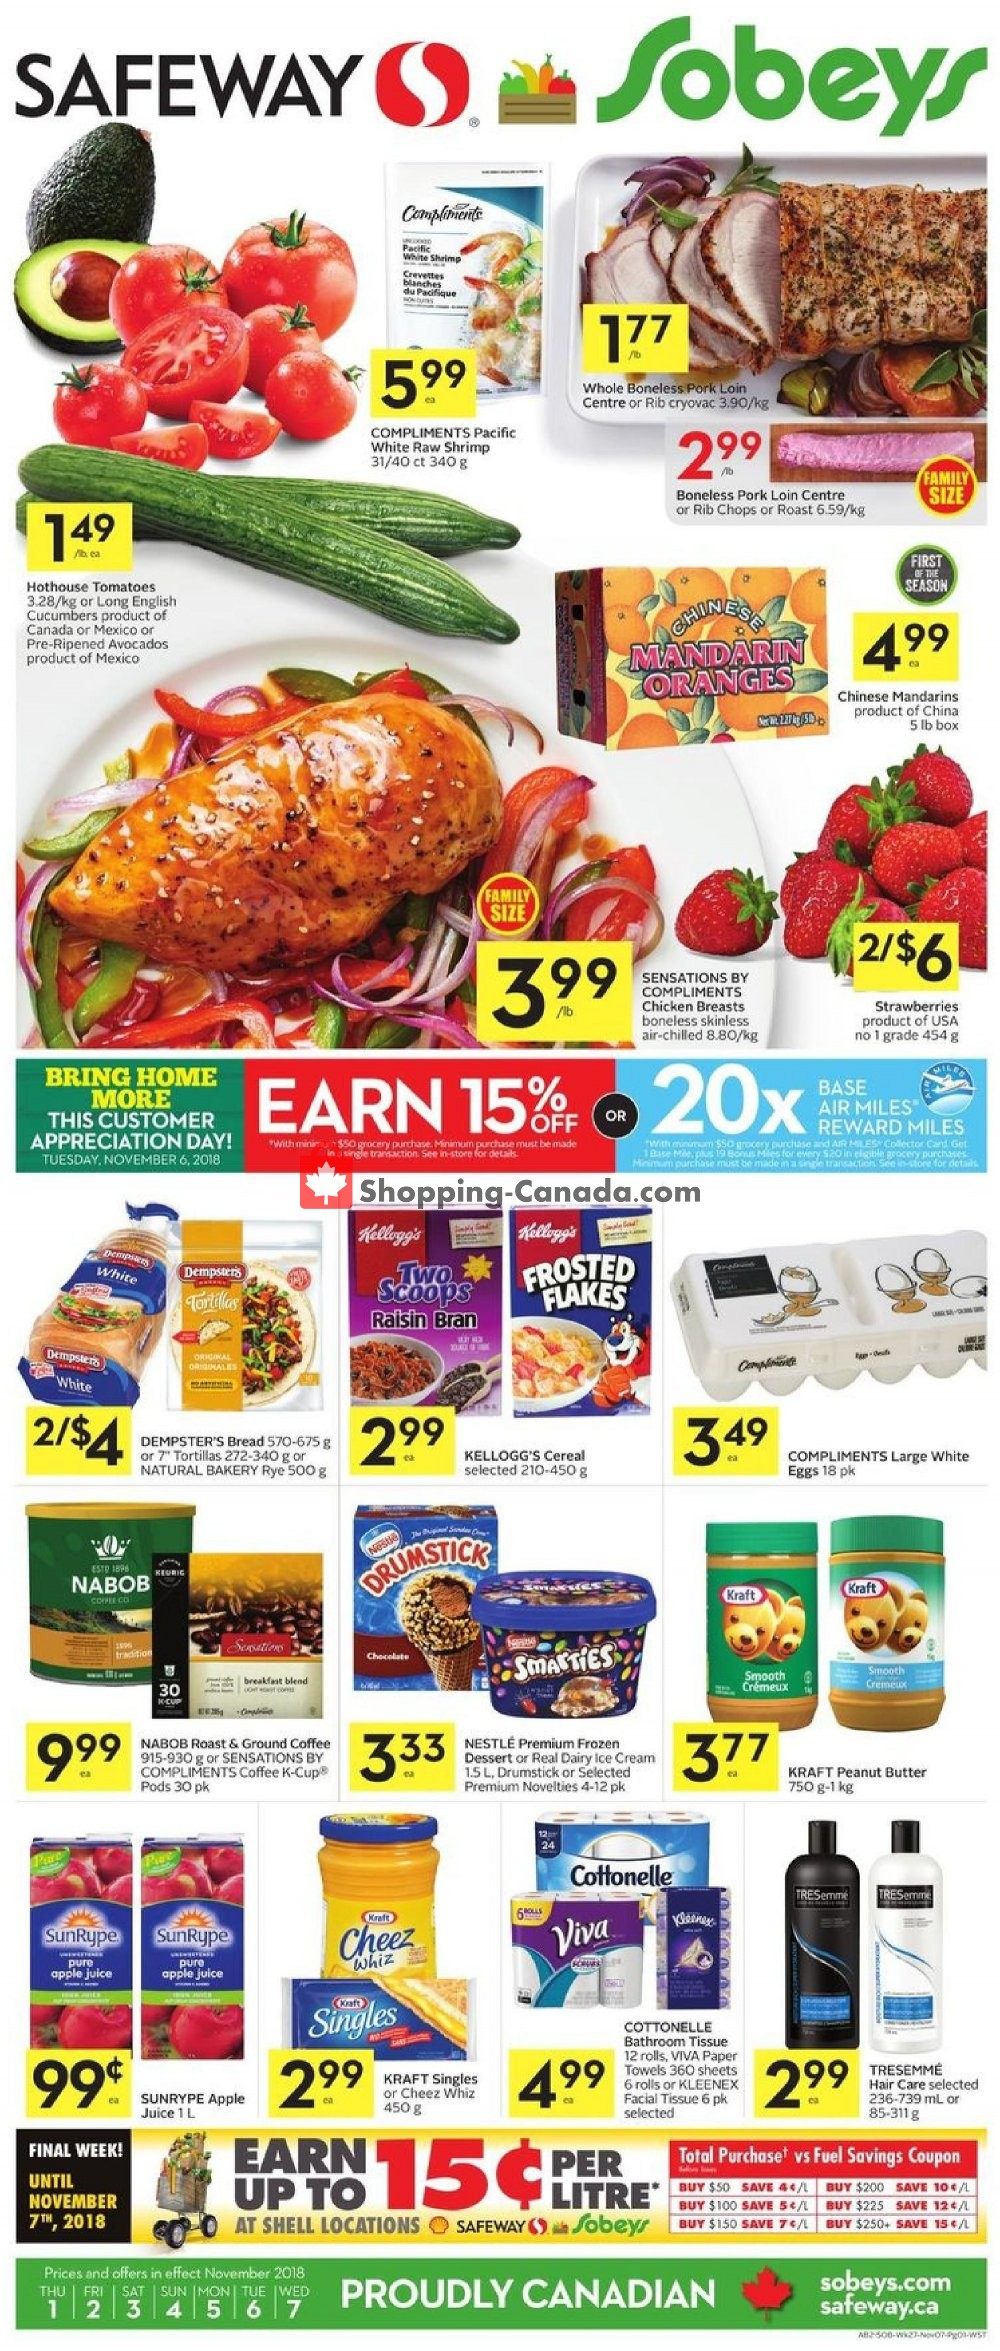 Flyer Safeway Canada - from Thursday November 1, 2018 to Wednesday November 7, 2018